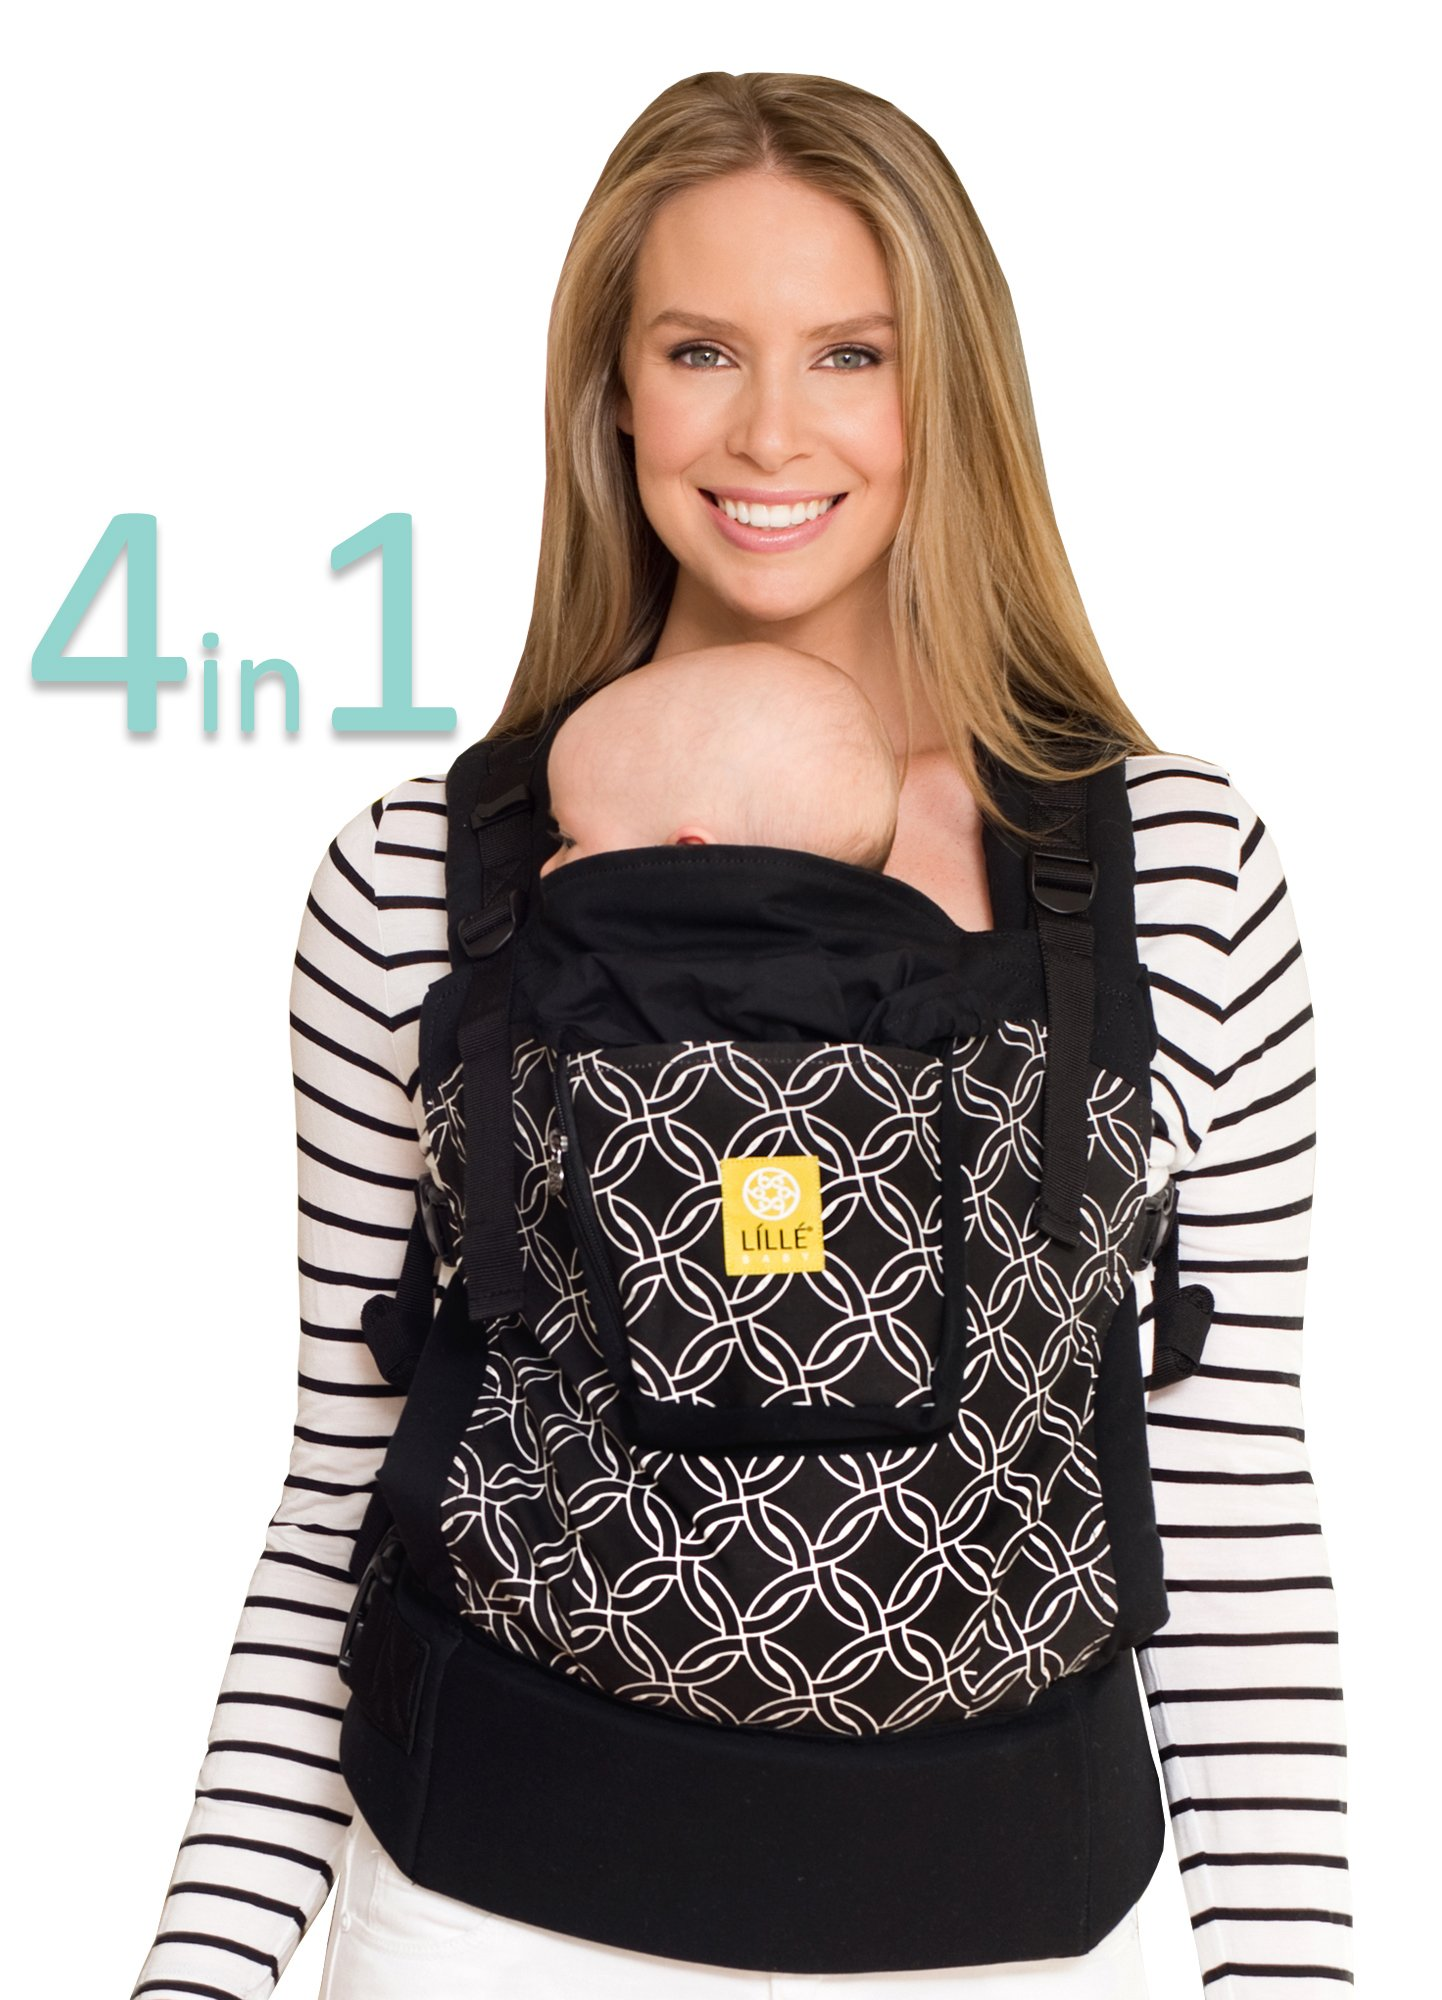 4 in 1 ESSENTIALS Baby Carrier by LILLEbaby – Black Knots